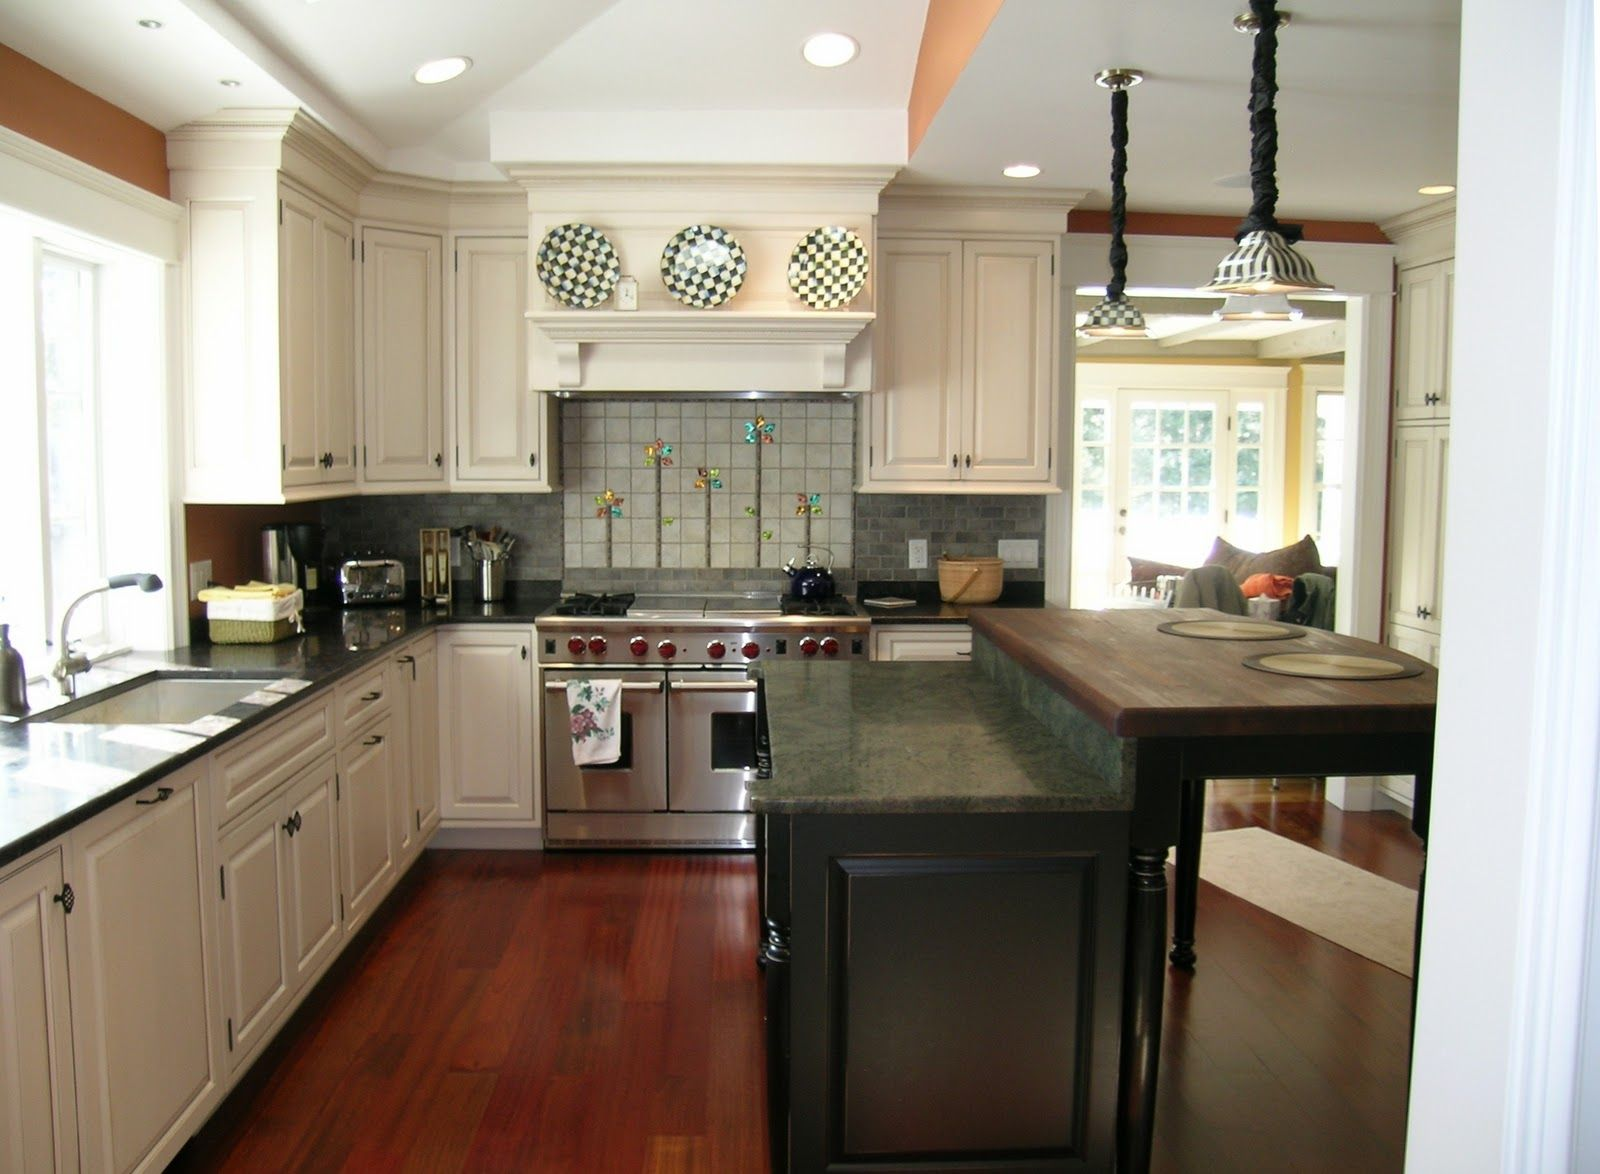 I Love This Kitchen Cherrywood Floors White Cabinets Love The Island Modern Kitchen Interiors Kitchen Interior Design Modern Shabby Chic Kitchen Cabinets